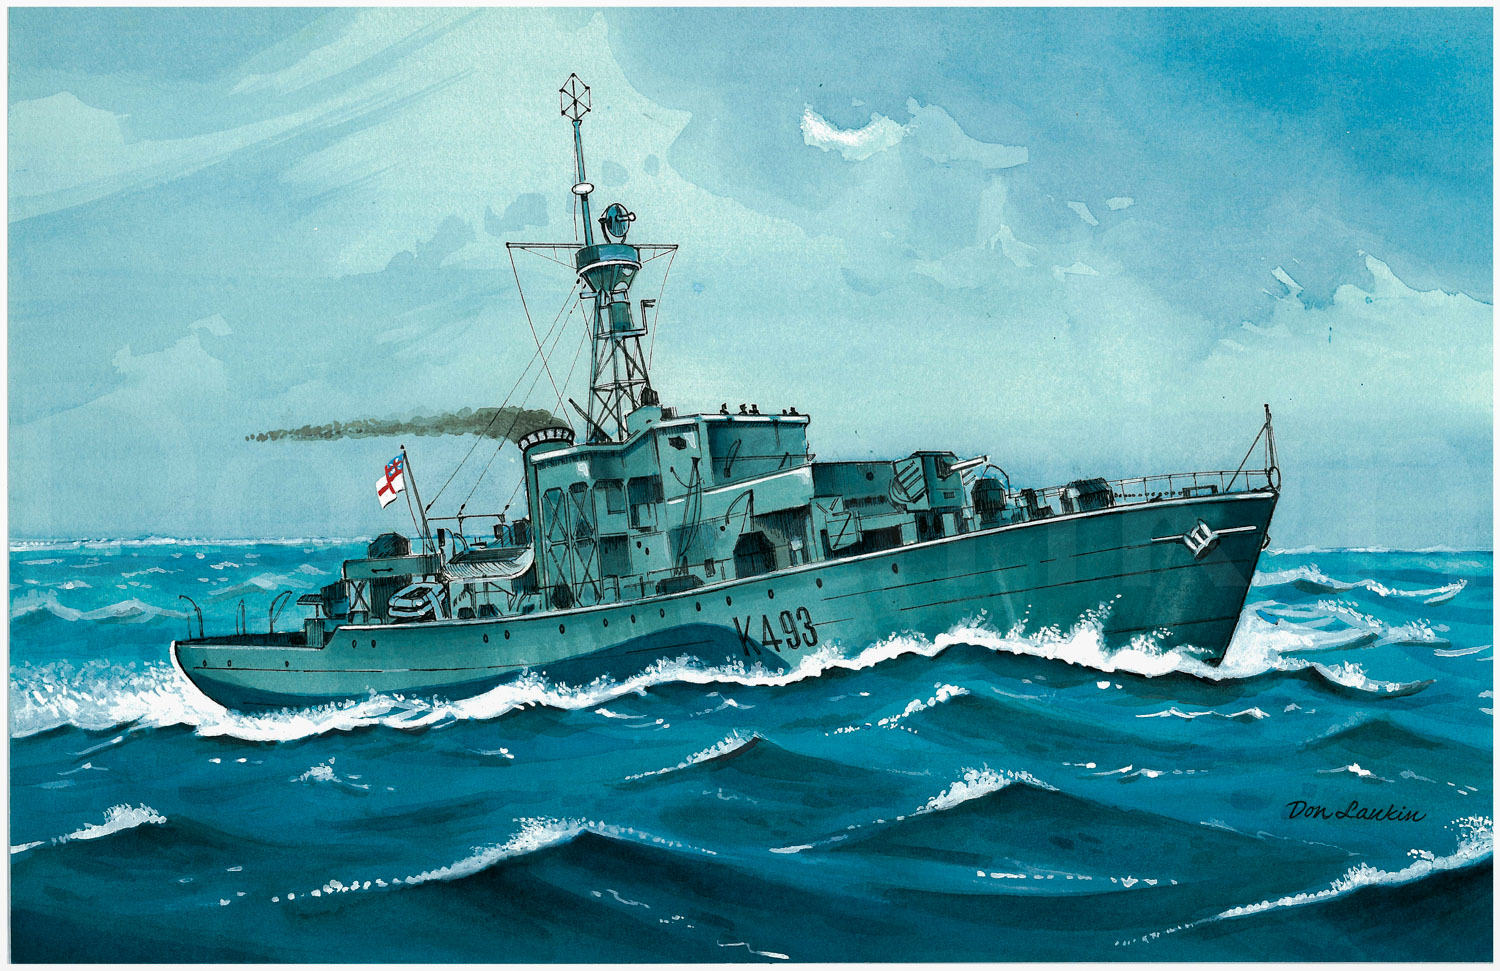 Castle Class Corvette K493 - H.M.C.S. Bowmanville - Builder Wm. Pickersgill & Sons Ltd. Launched January 26, 1944 - In commission September 28, 1944 to February 15, 1946